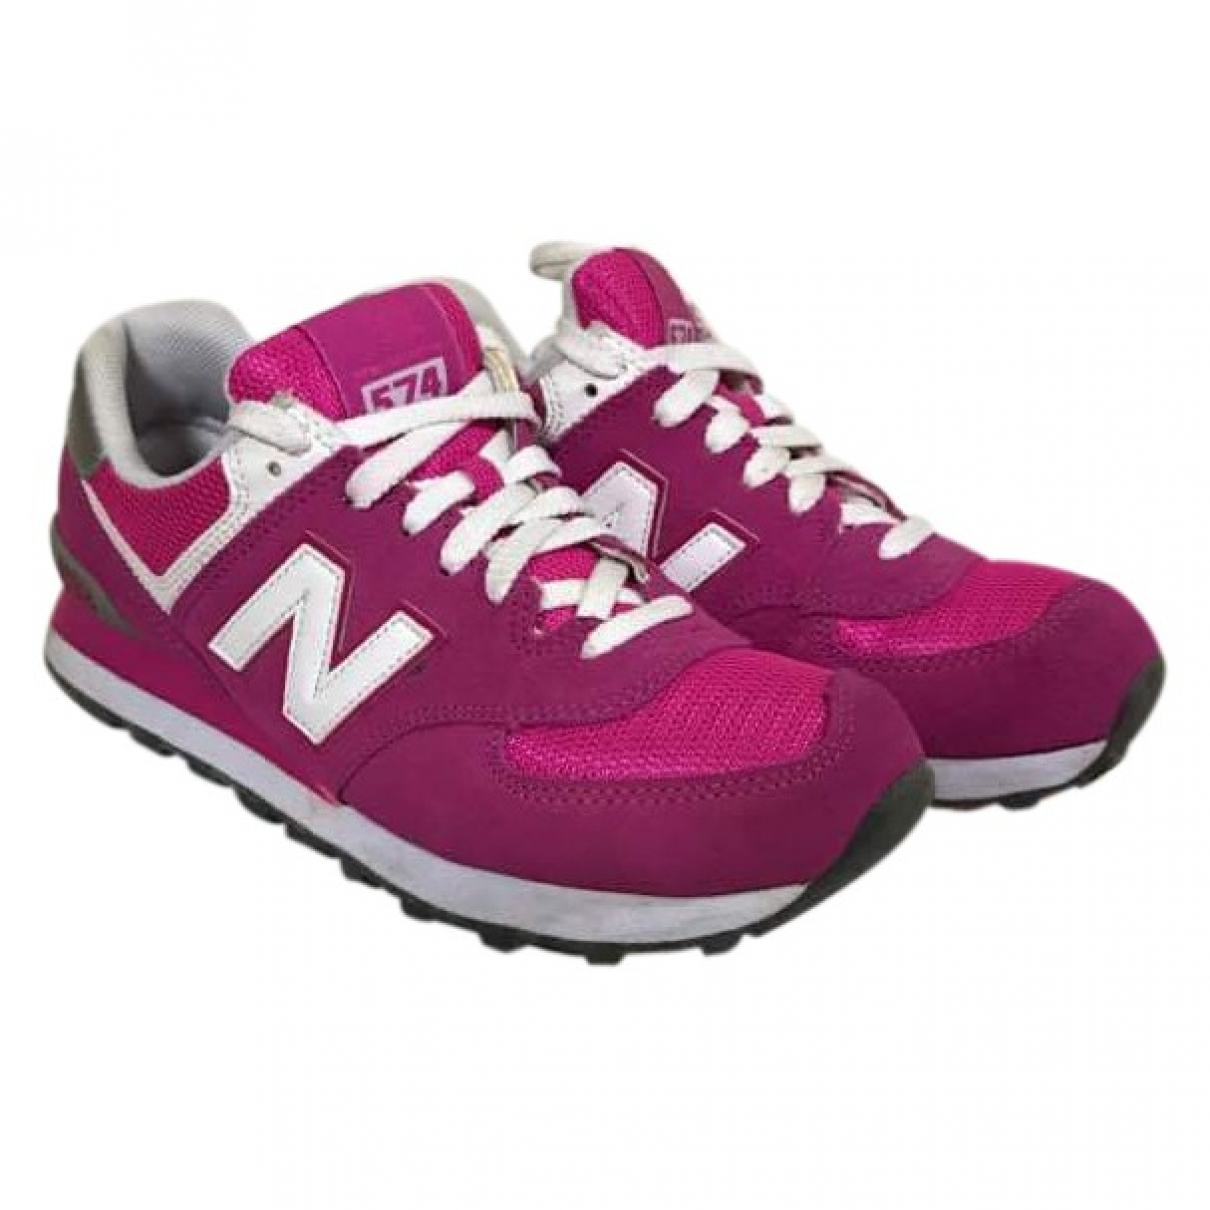 New Balance - Baskets   pour femme en velours